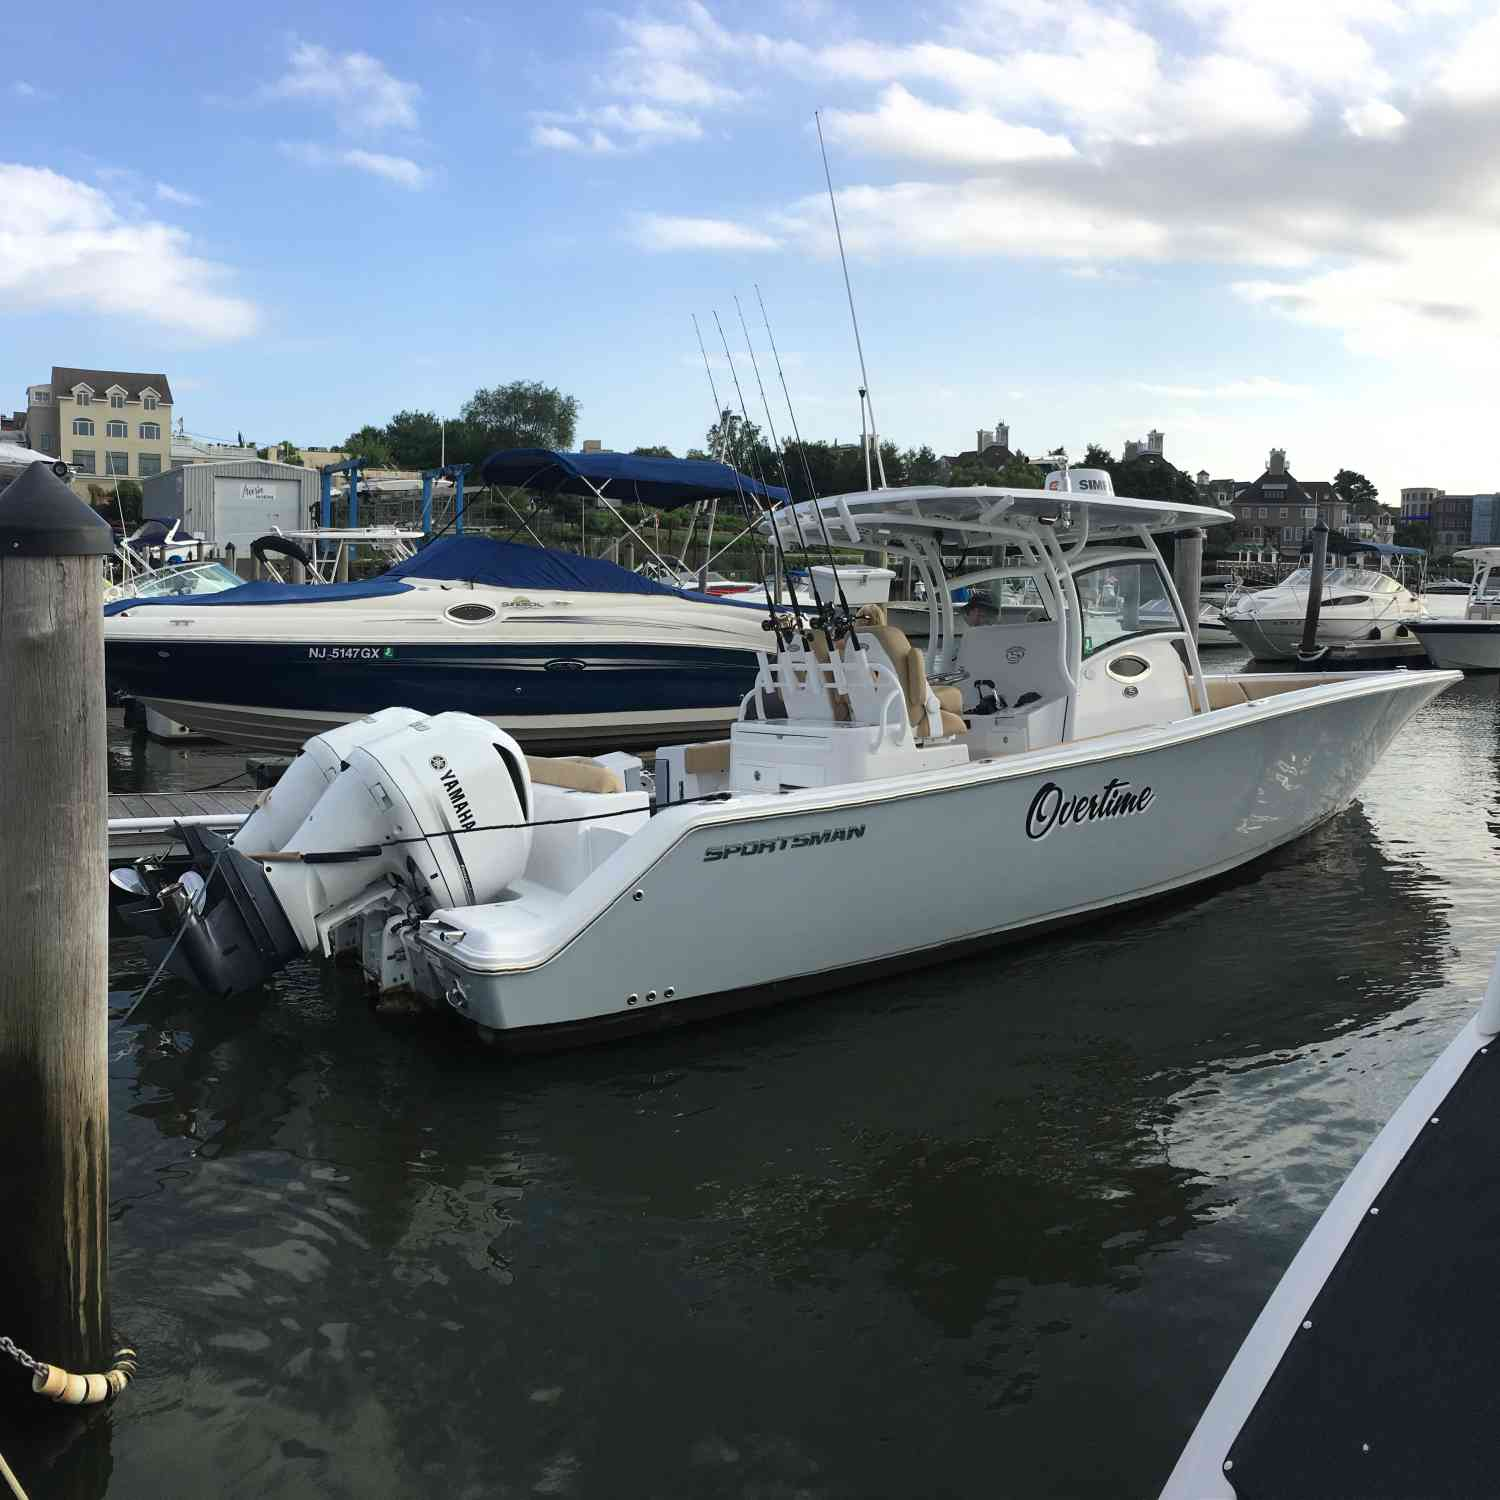 Title: Overtime - On board their Sportsman Open 312 Center Console - Location: Red Bank, NJ. Participating in the Photo Contest #SportsmanSeptember2018